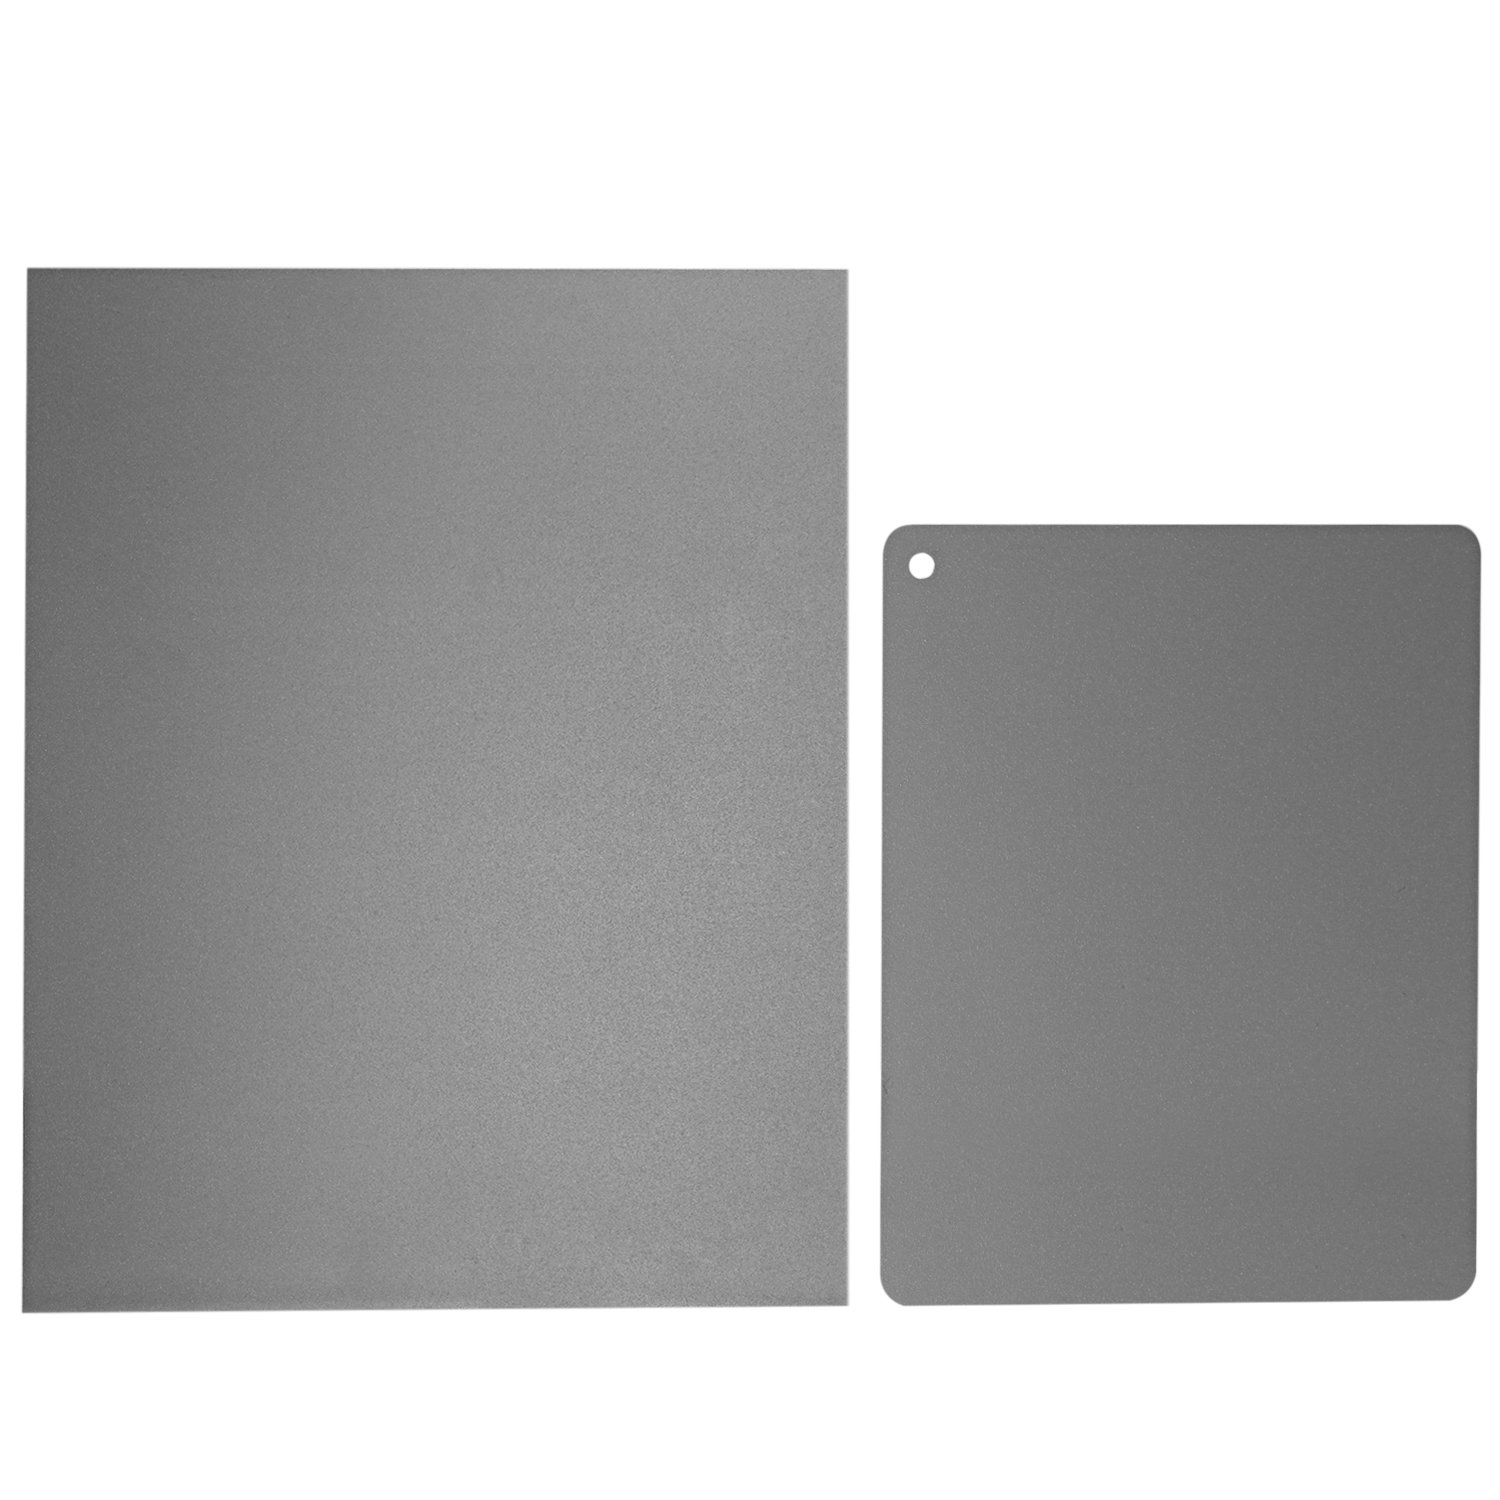 Neewer 2 Pieces Grey Card Set, Custom White Balance 18 Percent Gray Reference Reflector and Exposure Control Photographic Cardboard Kit (8x10 inches, 4x5 inches) for DSLR, Video, Film and Photography by Neewer